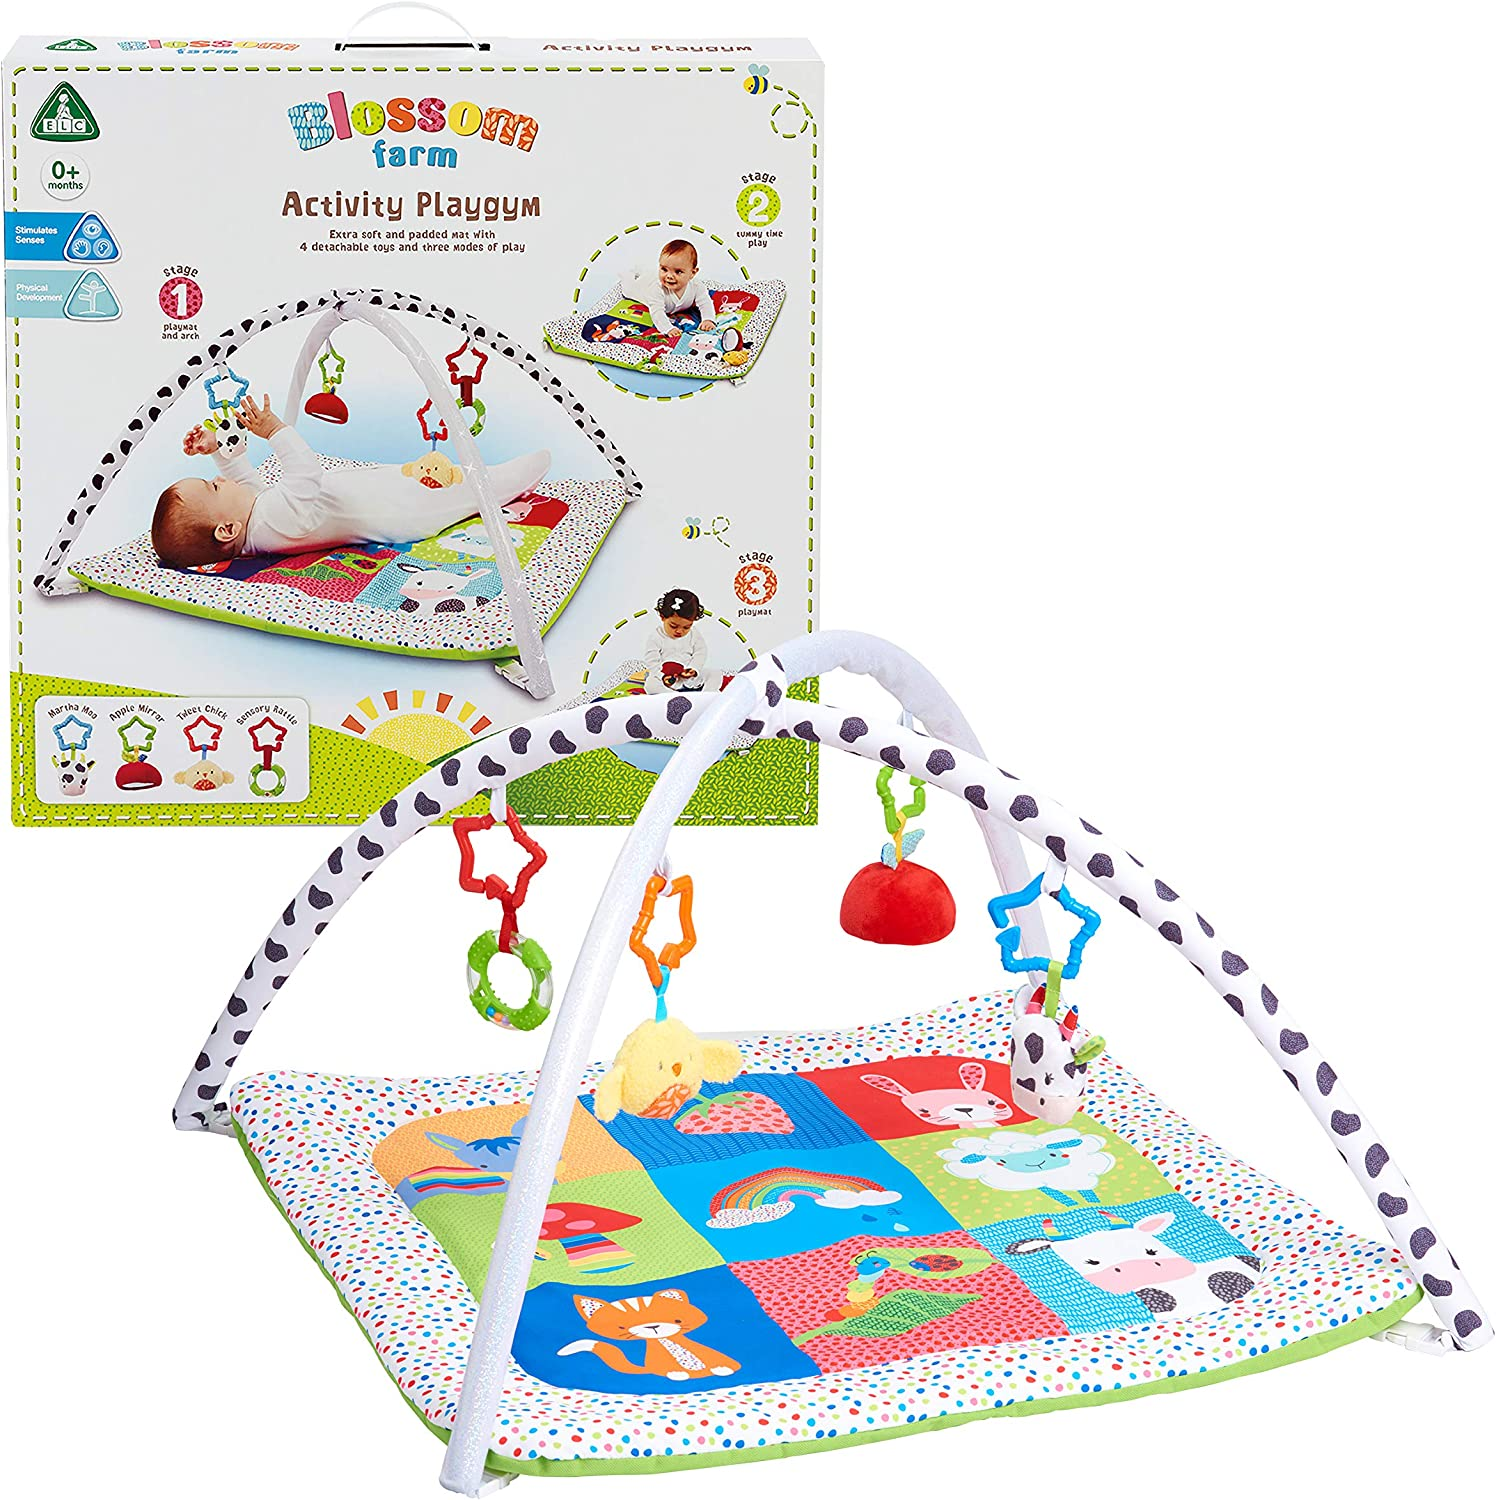 Early Learning Centre Blossom Farm Playmat & Arch, Physical Development, Hand Eye Coordination, Stimulates Senses, Baby Toys 0+ Months, Amazon Exclusive